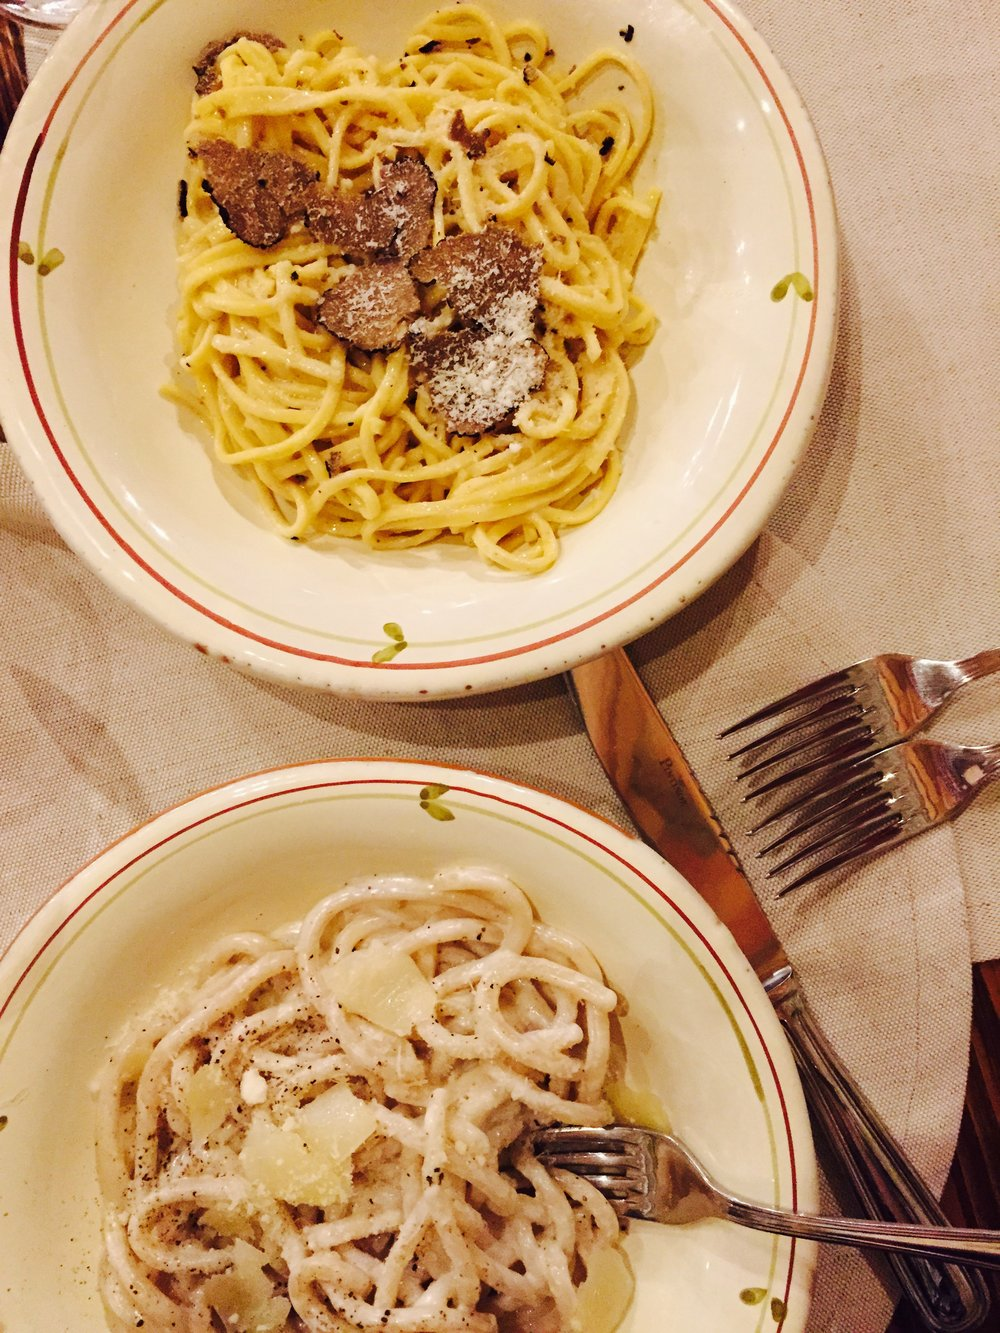 Tagliolini with black truffles and Cacio Pepe at La Vin'Osteria in Radda in Chianti, Tuscany Photo: Danielle Rehfeld